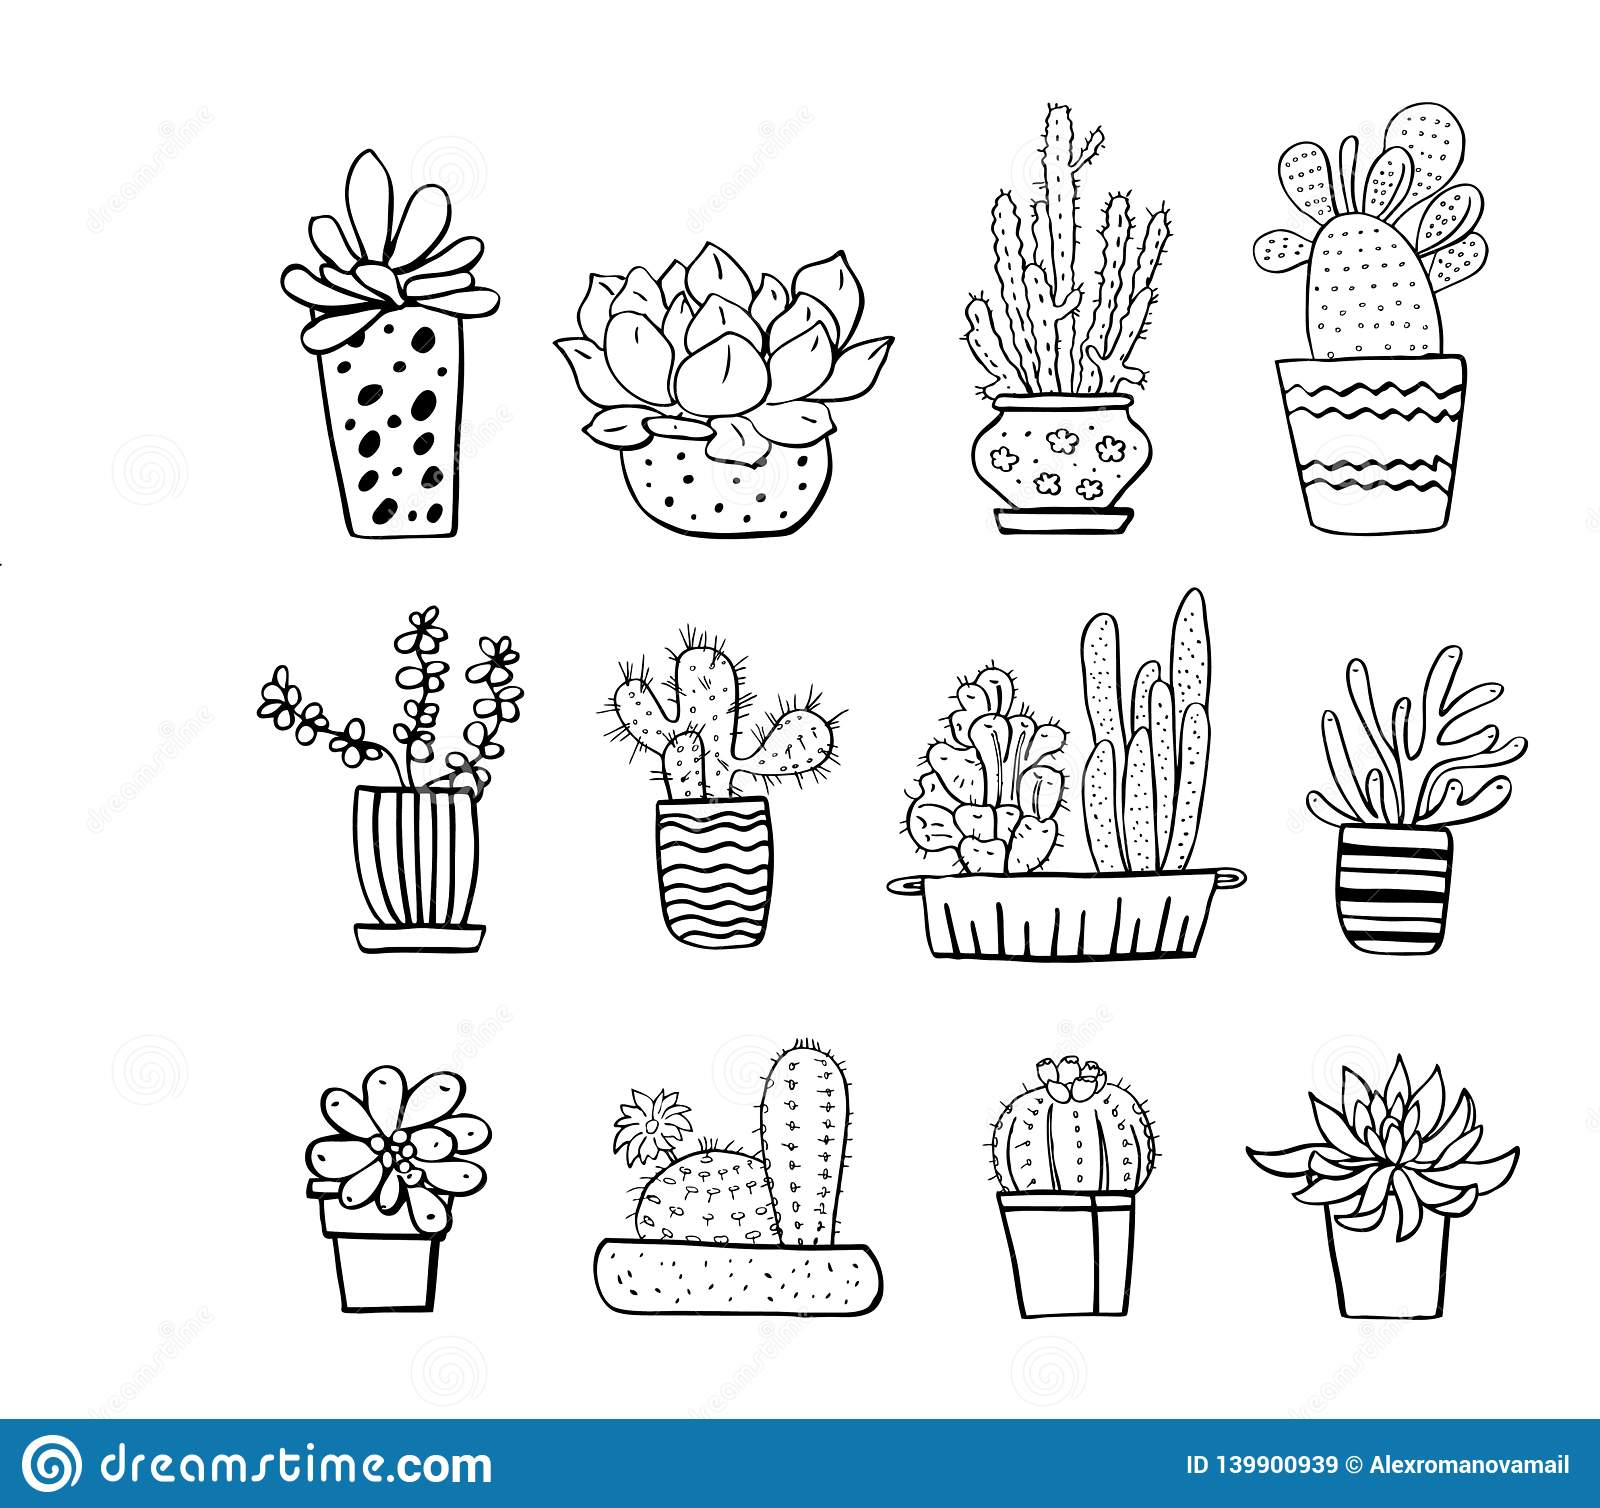 Cactus And Succulent Plants In Flowerpots Vector Hand Drawn Outline Black And White Sketch Illustration Stock Vector Illustration Of Flora Flower 139900939